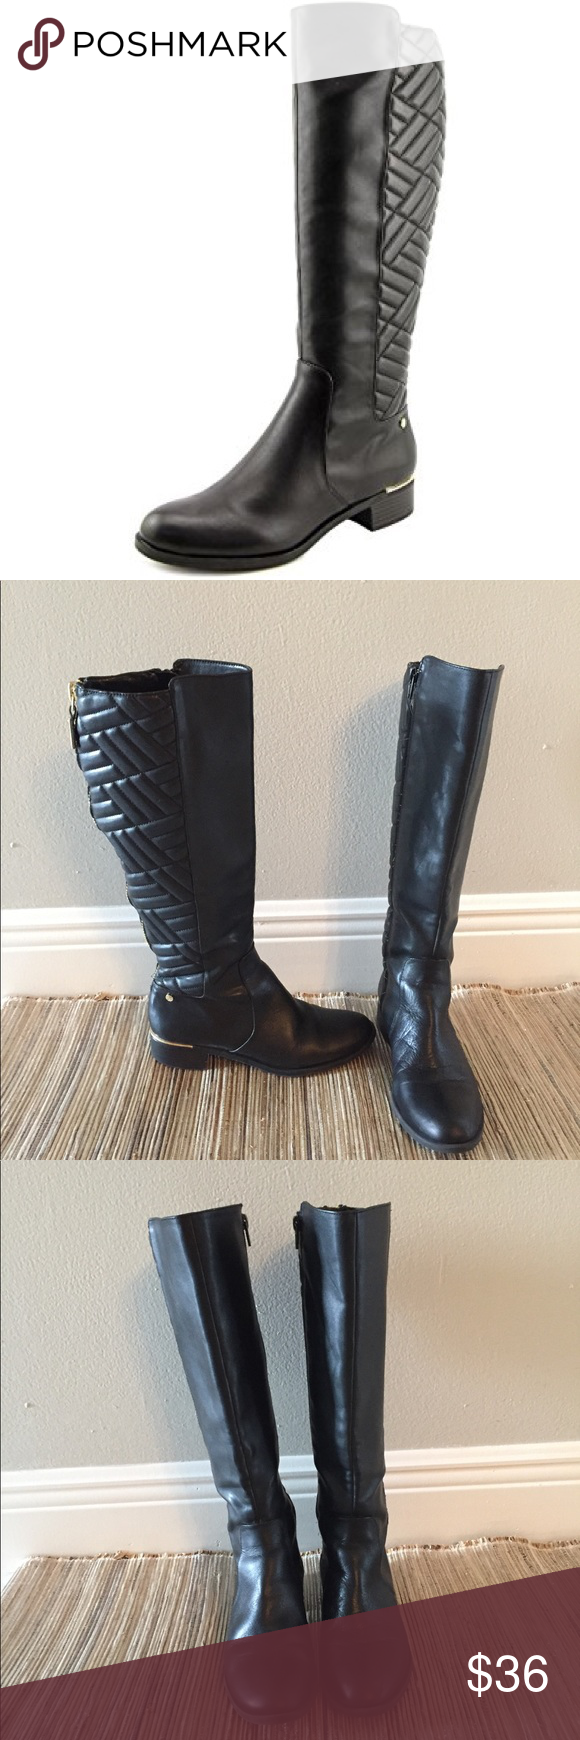 e5f509d72bf Calvin Klein Garcella Black Knee High Boots 6.5 In great used condition.  The Calvin Klein Garcella Wide Calf Boots feature a Leather upper with a  Round Toe.